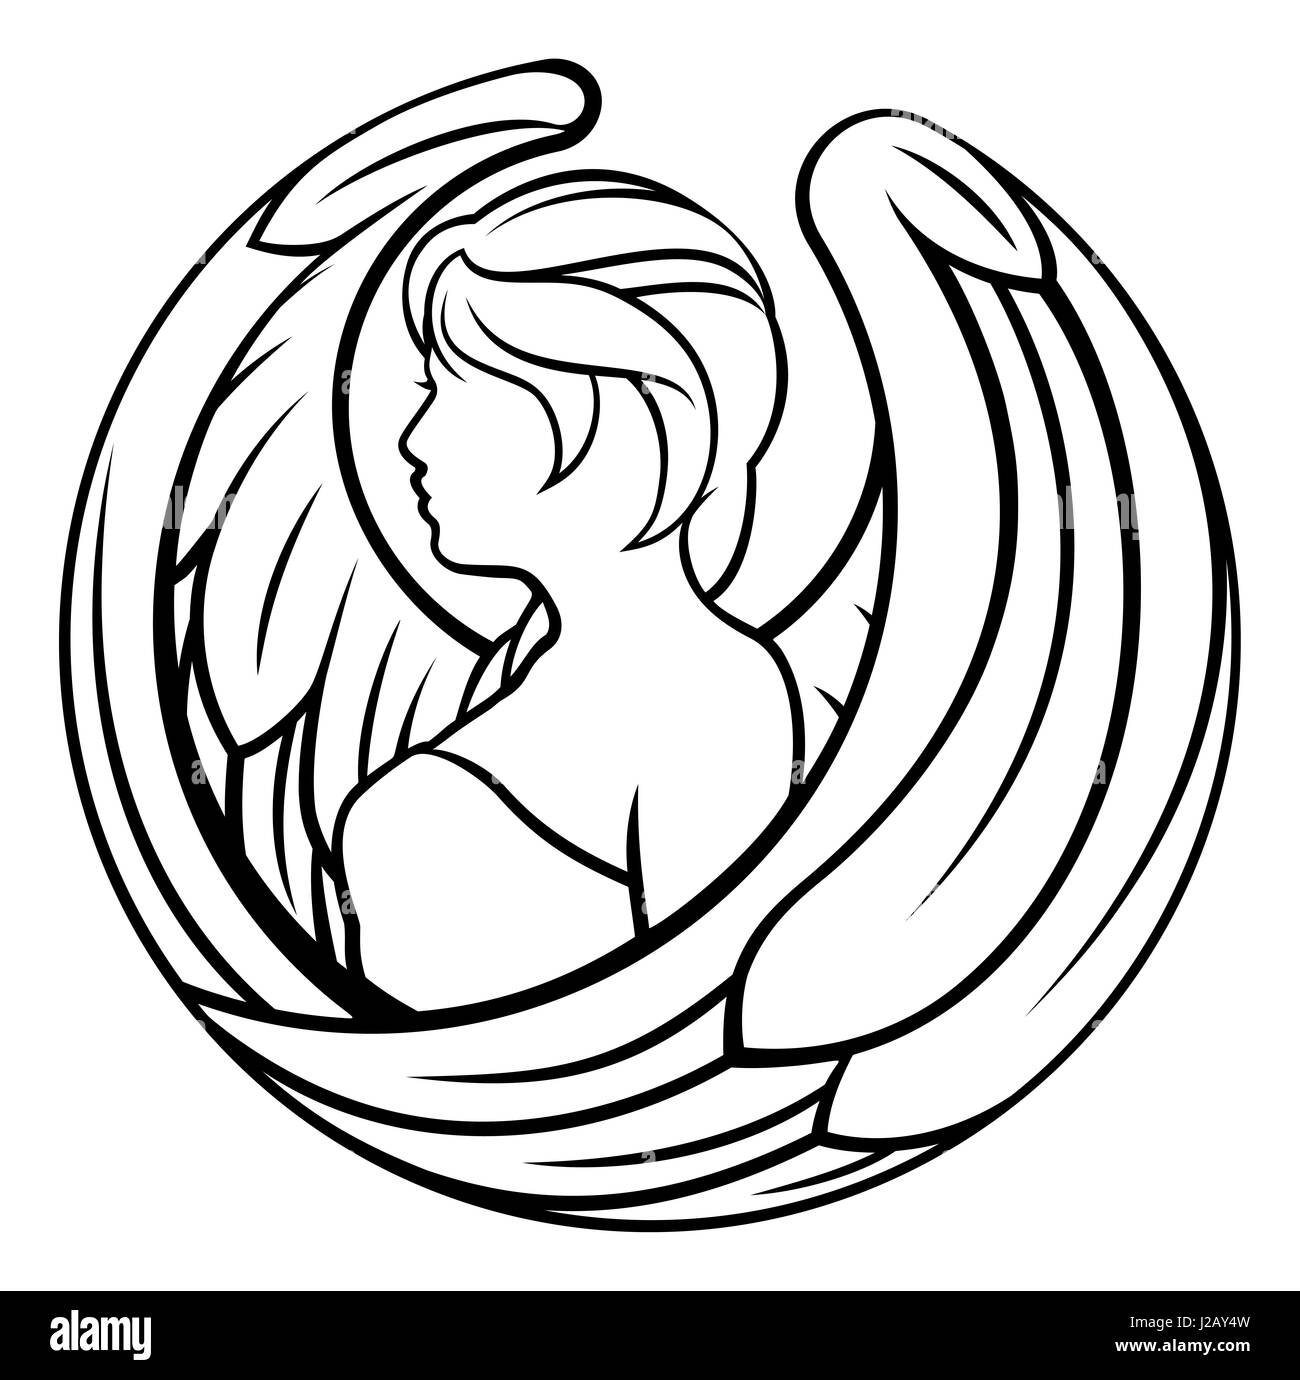 A virgo angel horoscope astrology zodiac sign symbol stock photo a virgo angel horoscope astrology zodiac sign symbol buycottarizona